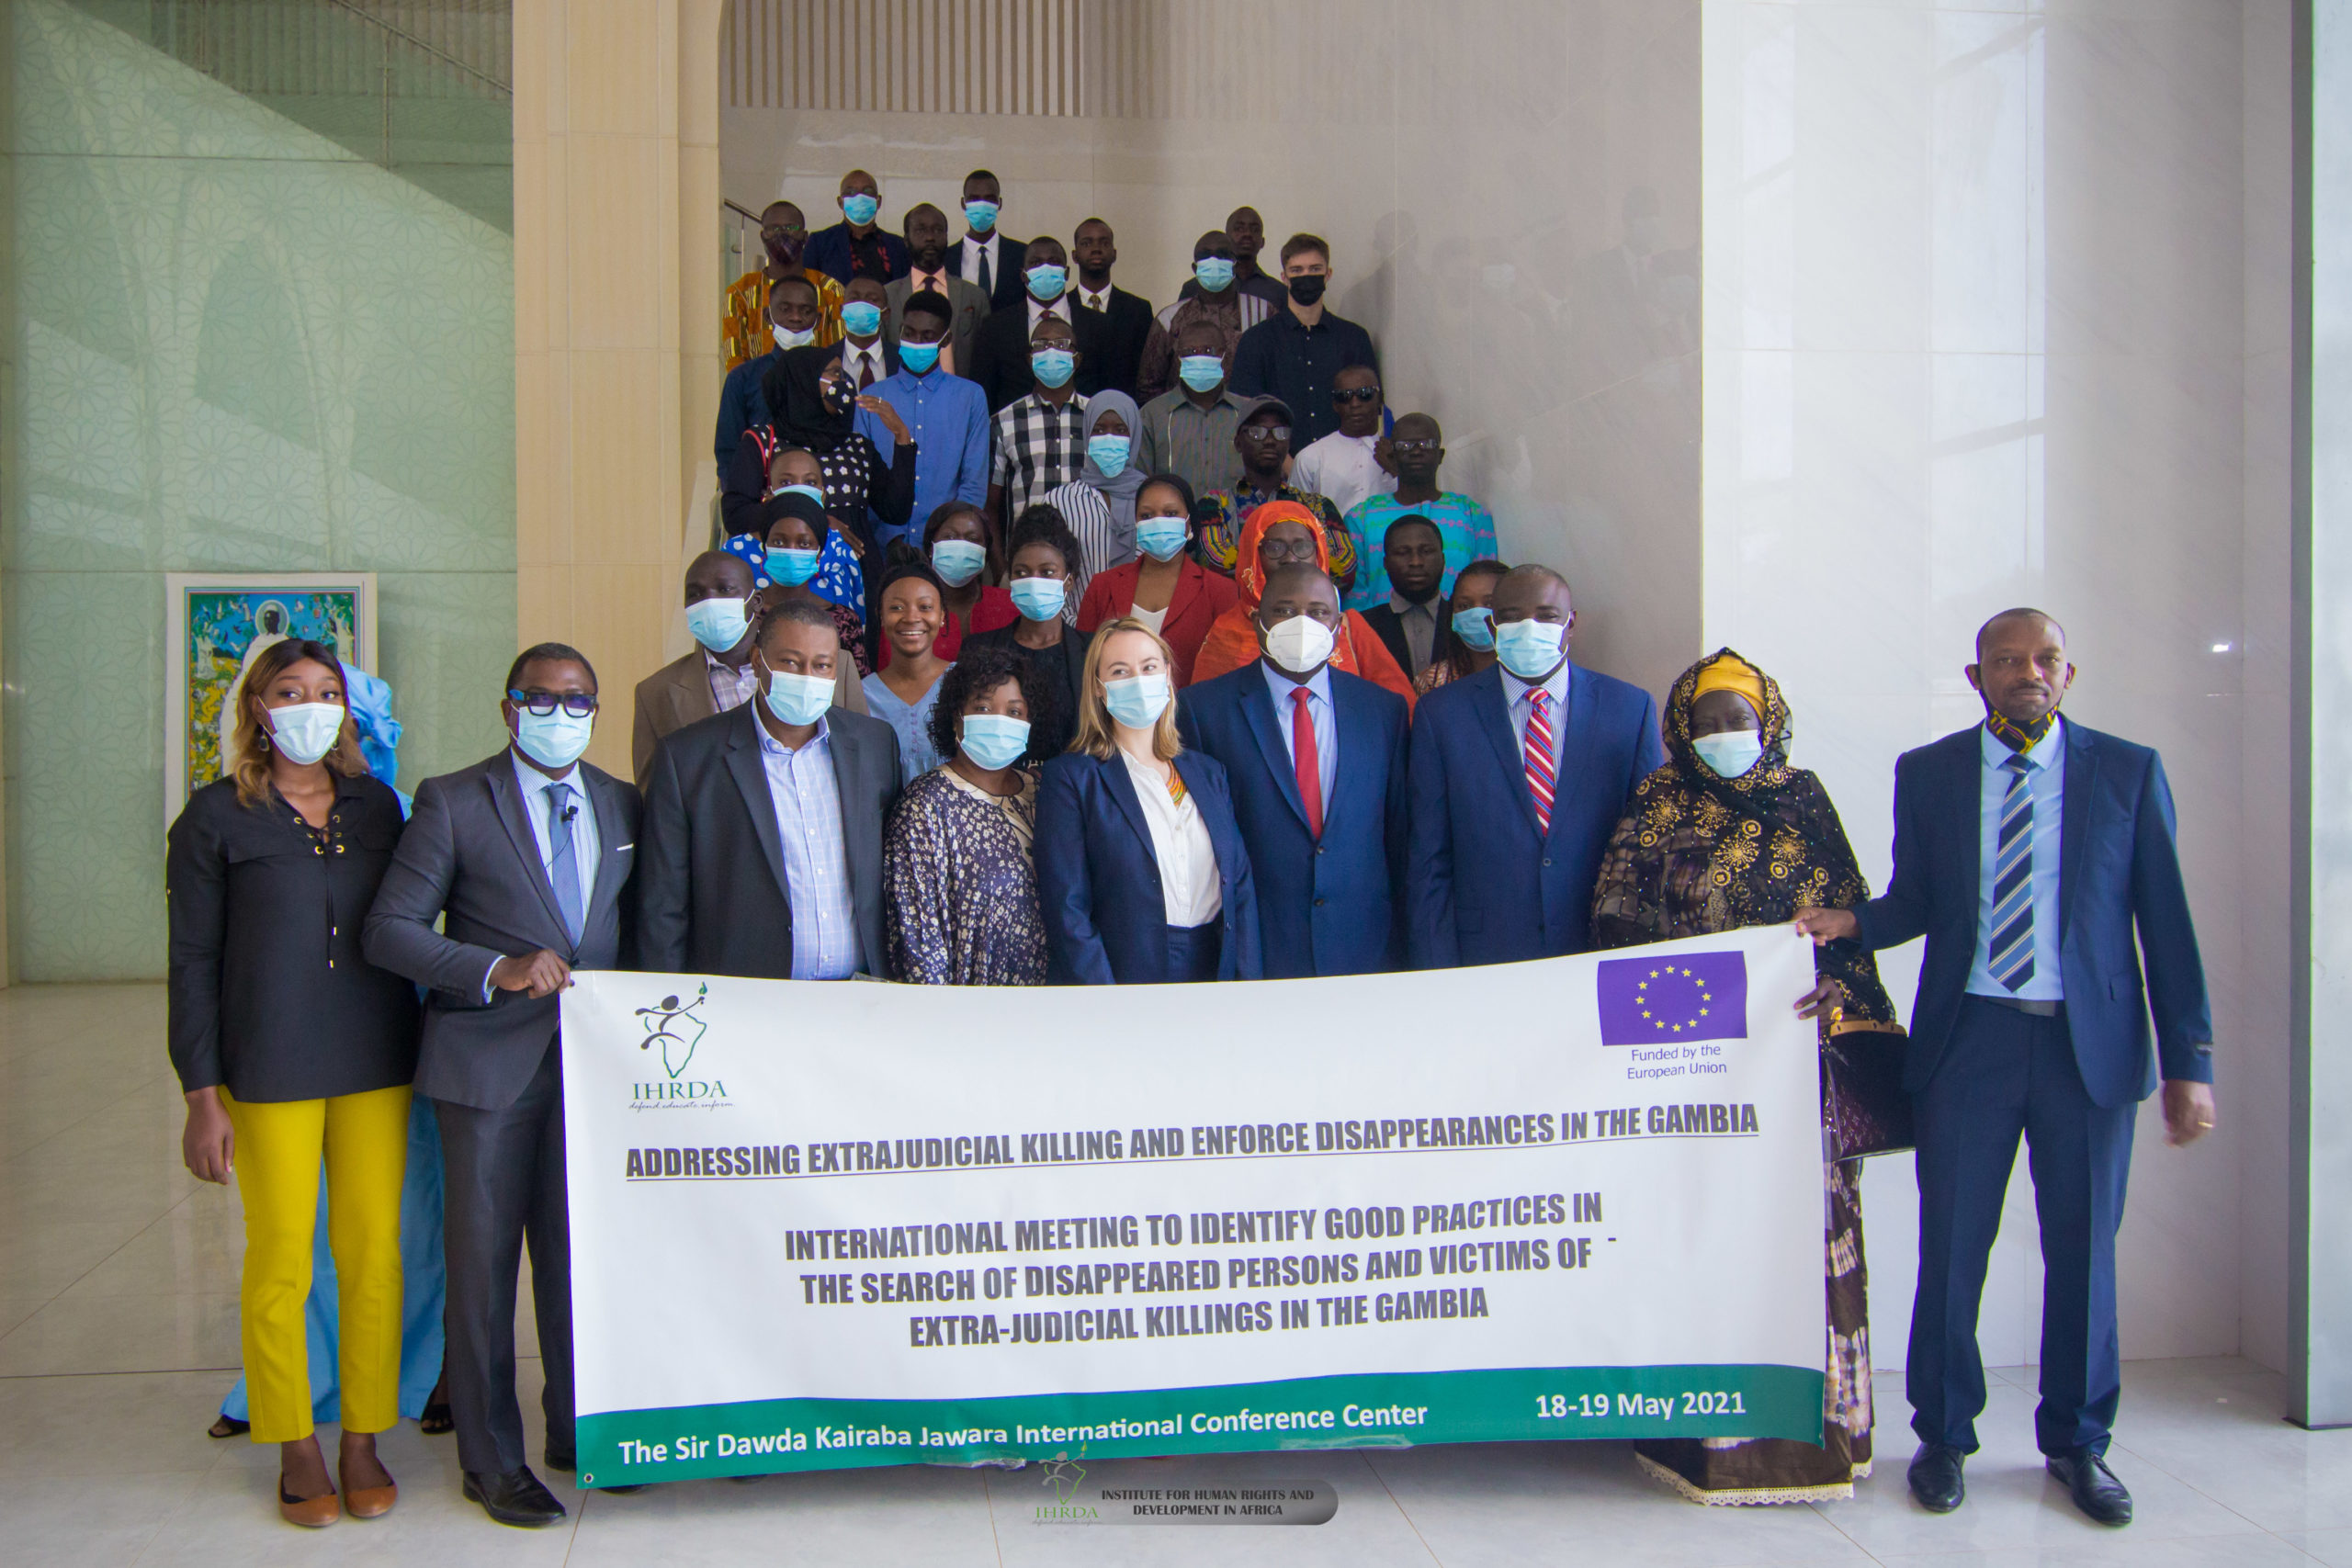 Searching for victims of enforced disappearances, extra-judicial killings: IHRDA organizes conference on application of international guiding principles in The Gambia